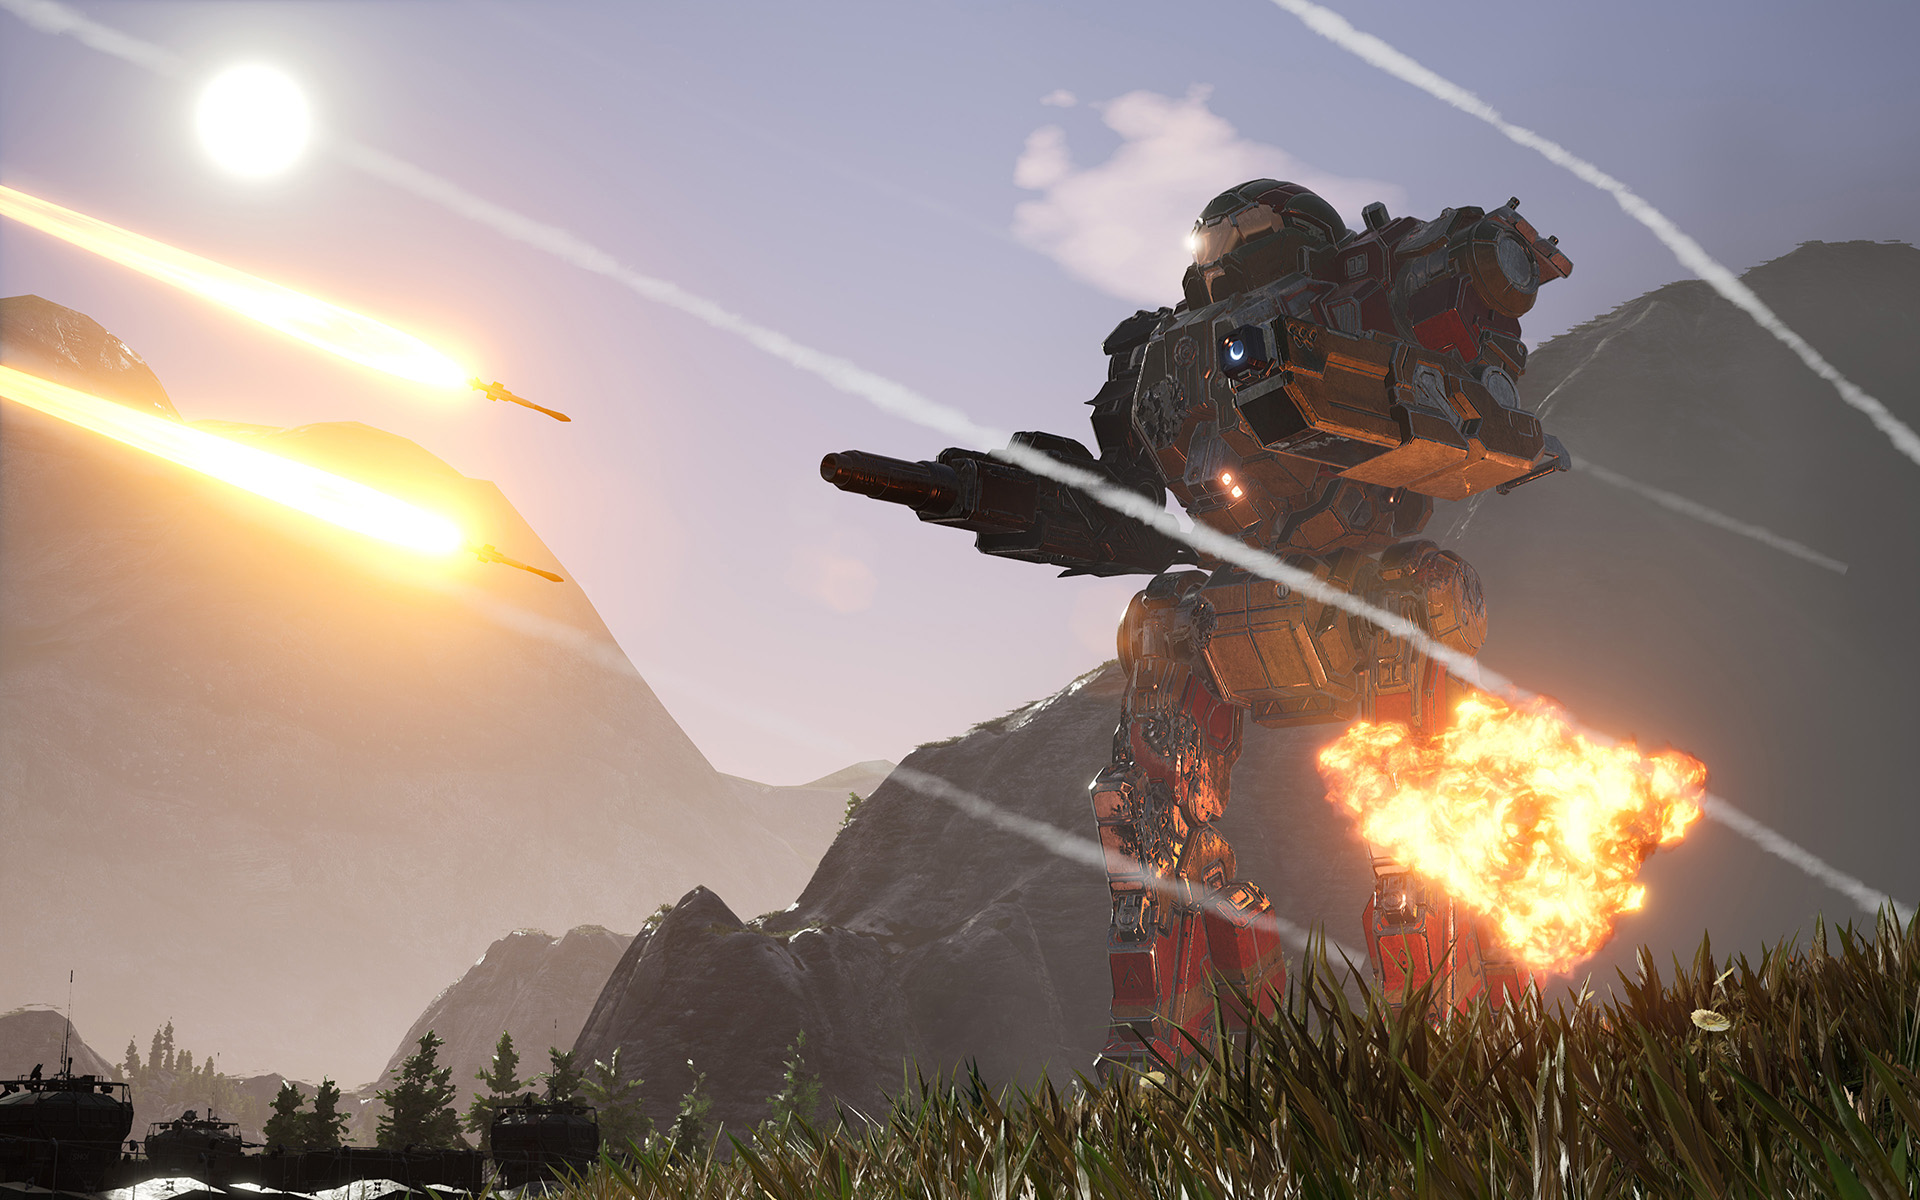 MechWarrior 5 Release Date Delay